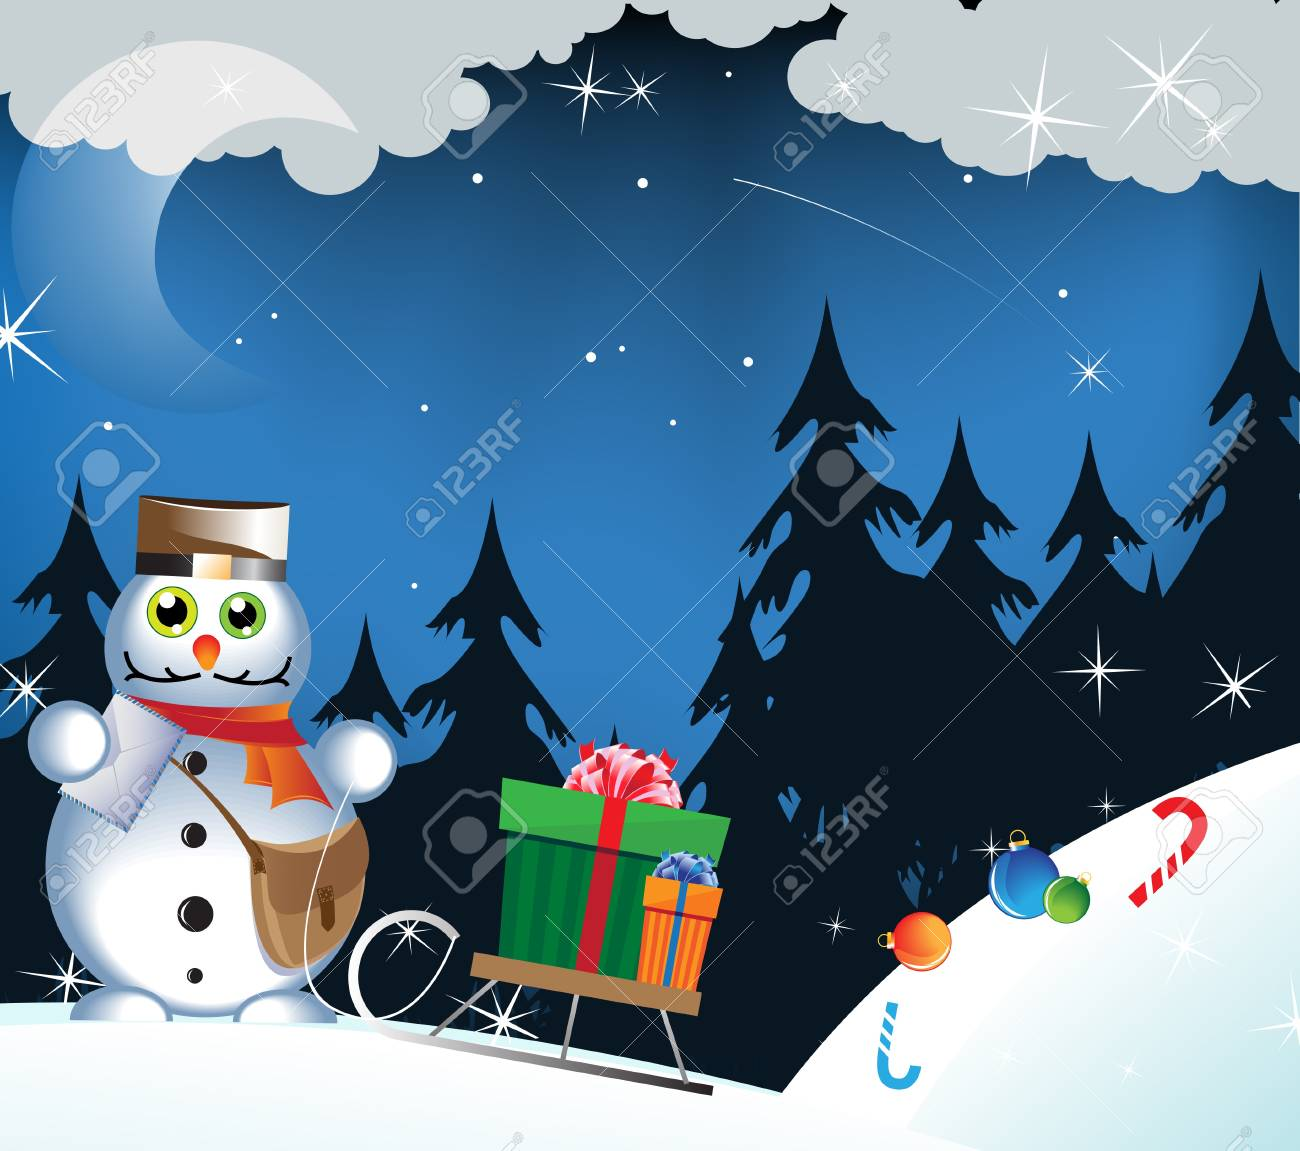 Amusing snowman-postman carries gifts on a sledge Stock Vector - 16420364